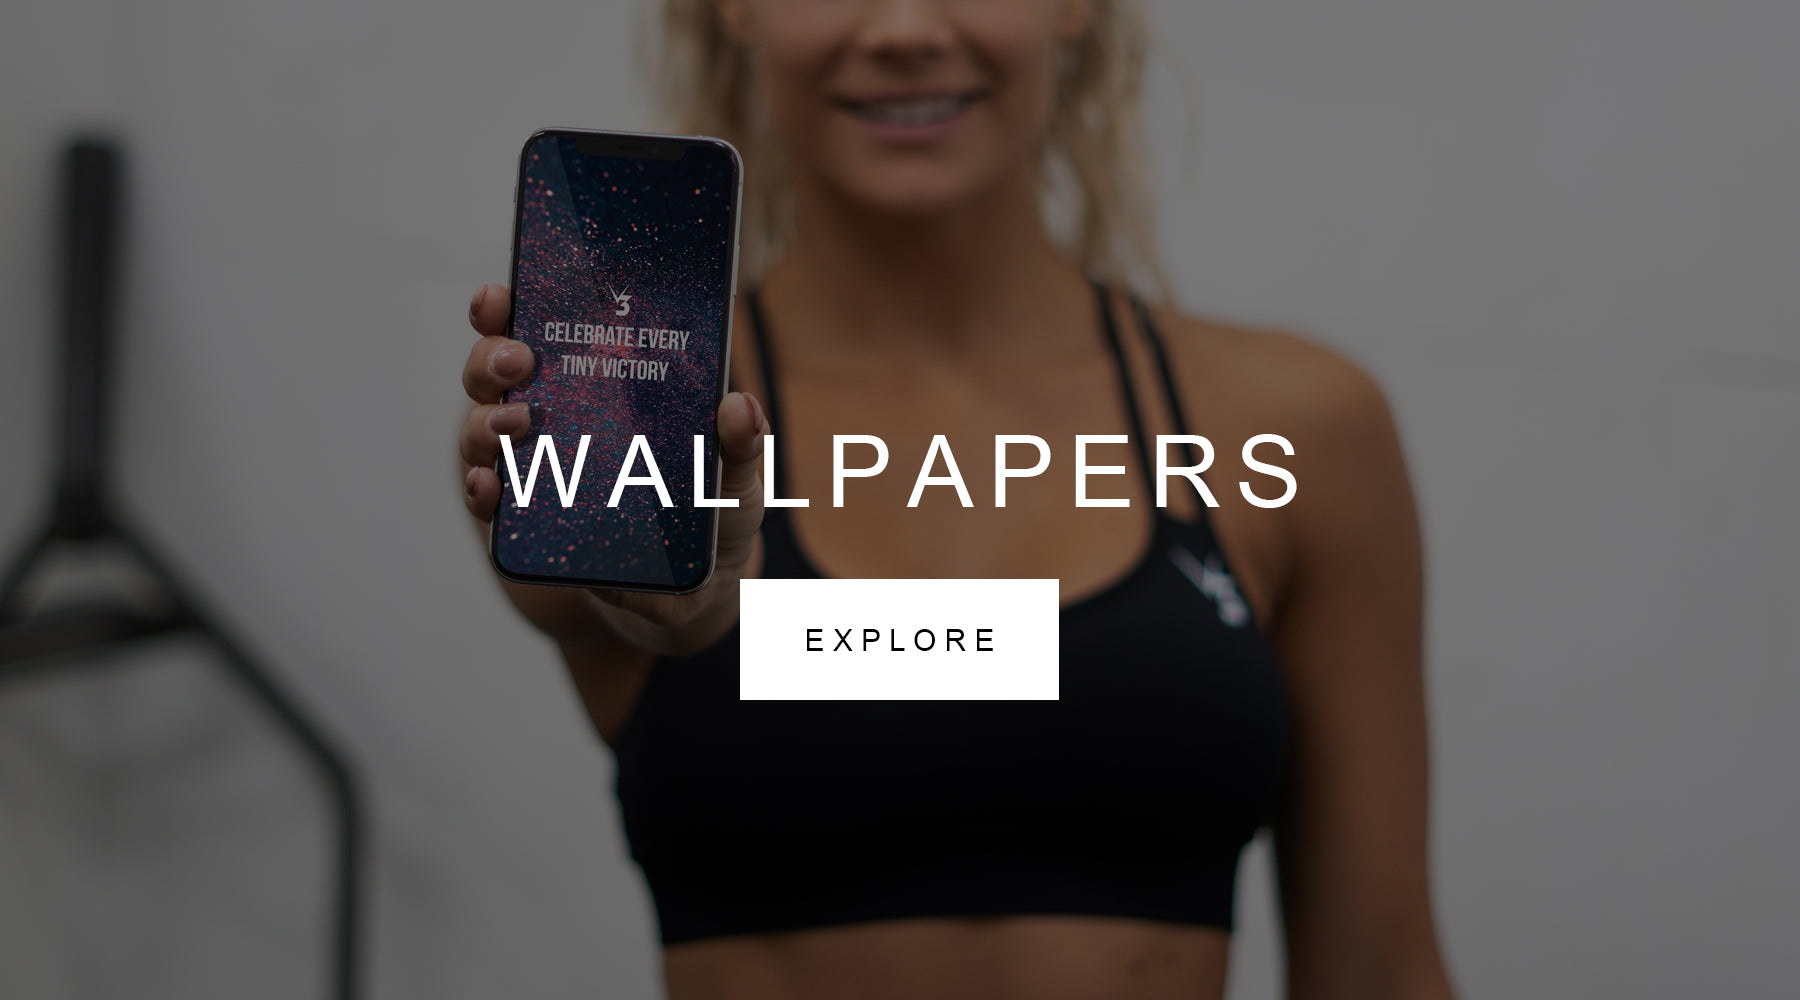 Free HD motivational Iphone fitness wallpapers, life and workout quotes and free gym phone screensavers